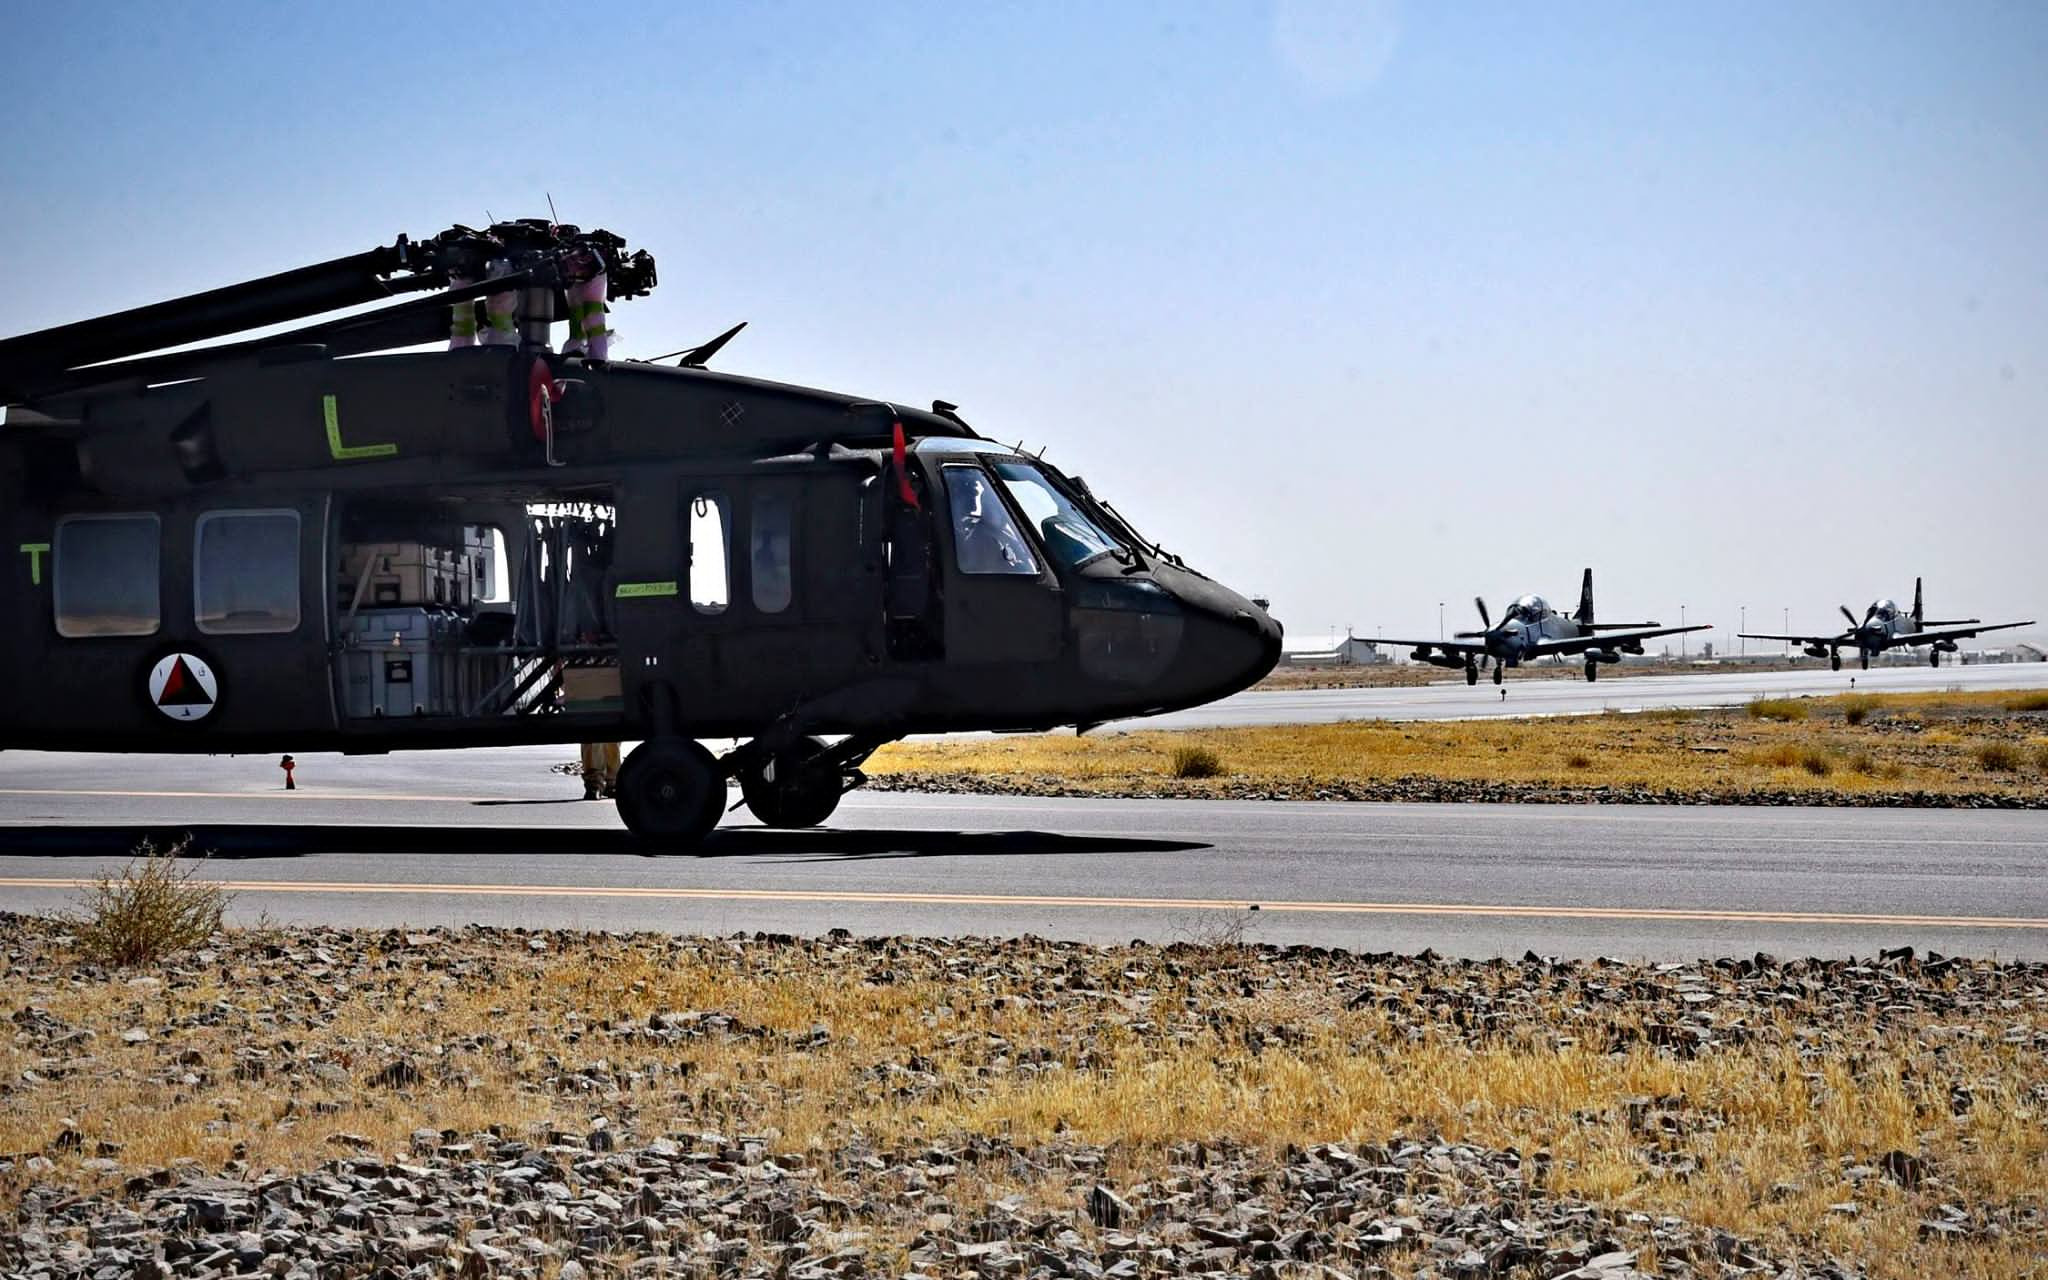 Taliban Claims Black Hawk Helicopter Destroyed In Another 'Tactical Attack' On Afghanistan's Kunduz Airport (Photos, Video)